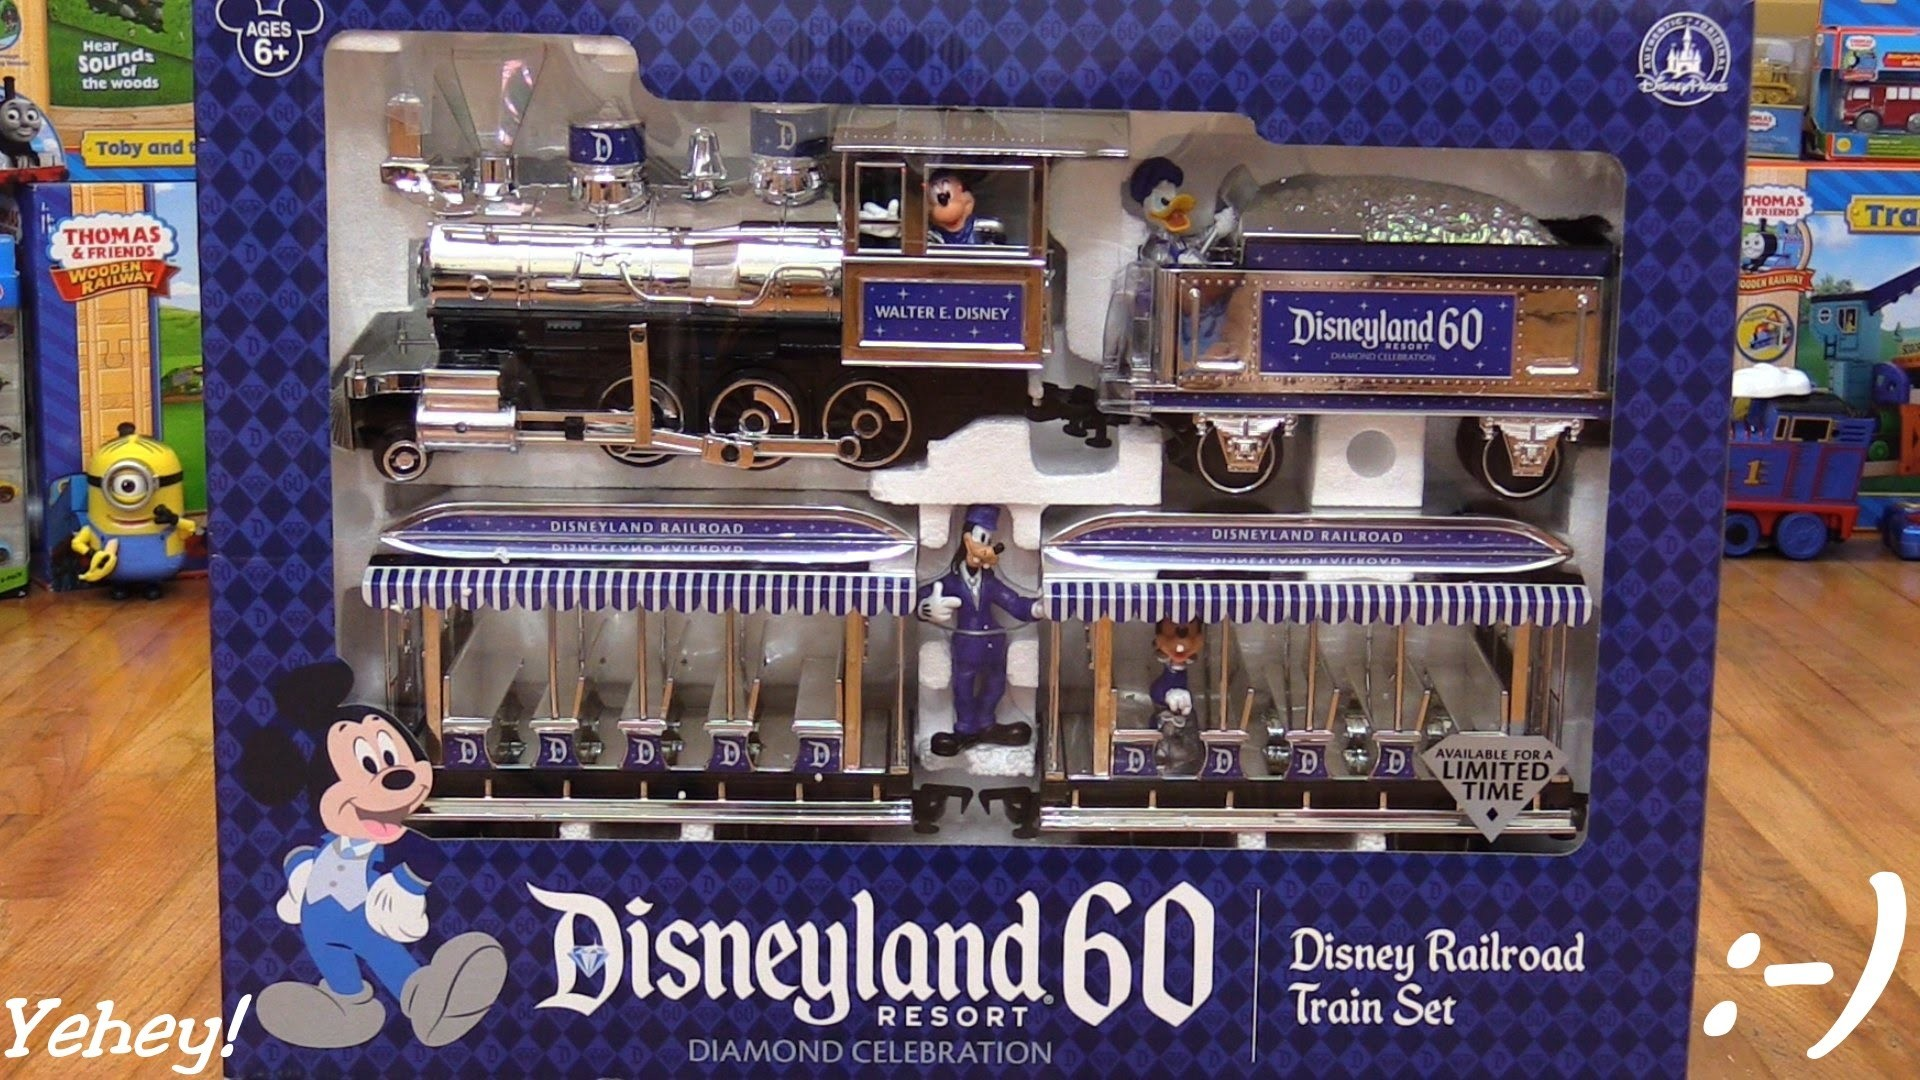 1920x1080 Disney Railroad Train Set 60th Diamond Anniversary Edition Unboxing 1 of 2  - YouTube